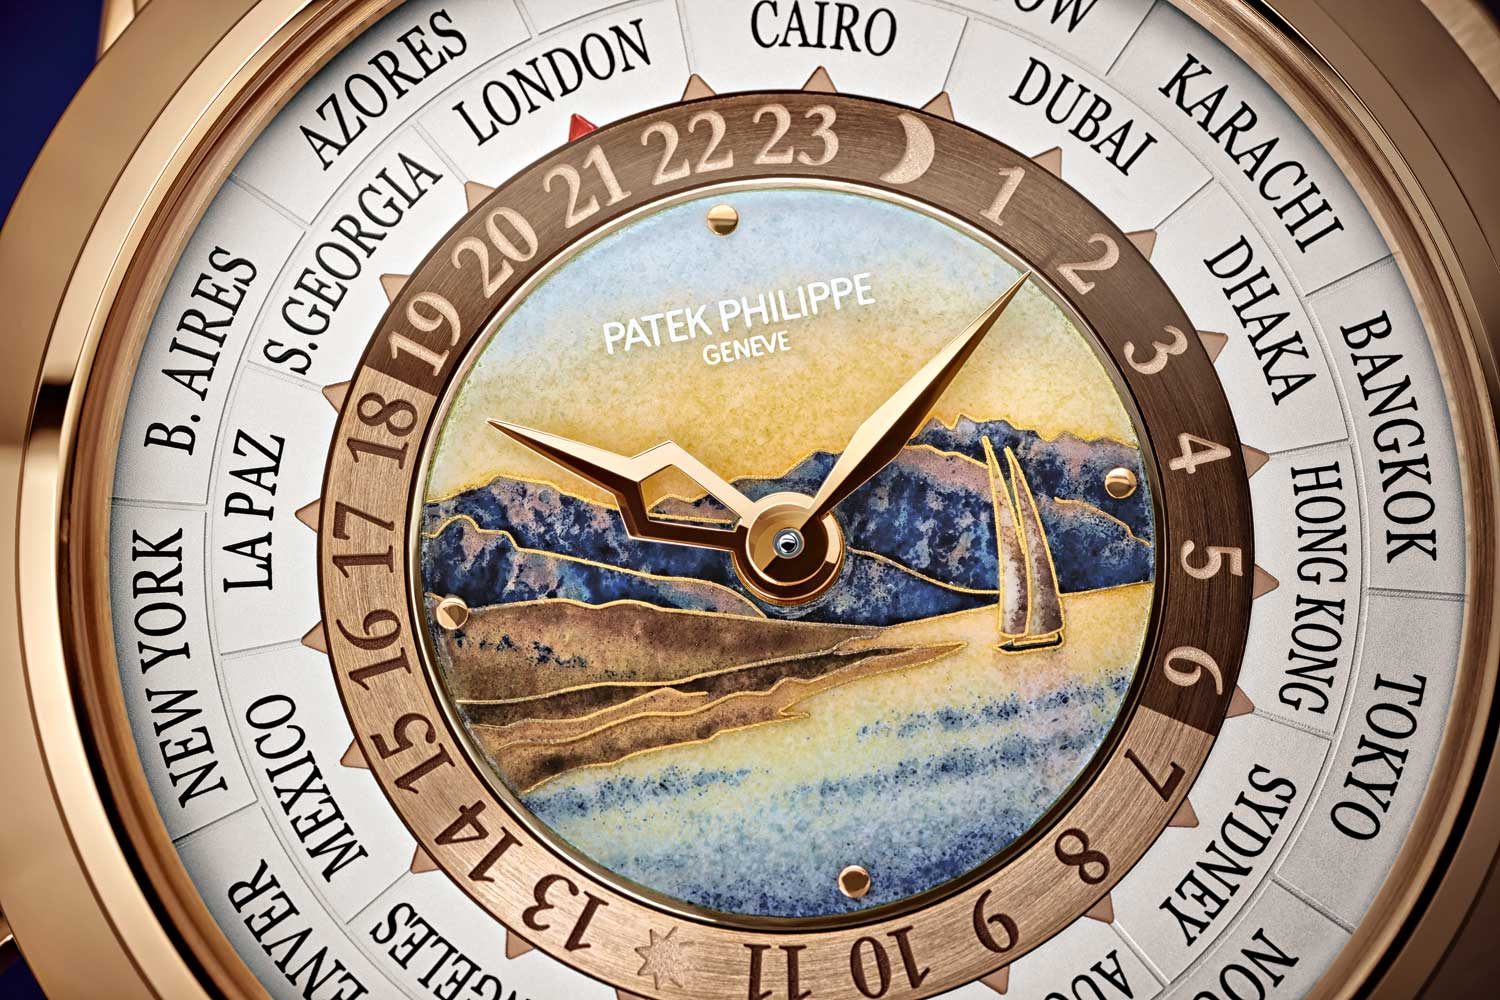 In 2018, Patek Philippe unveiled a regular production 5531R dedicated to depicting a scene of the Lavaux Vineyards, a UNESCO World Heritage Site on the shores of Lake Geneva.